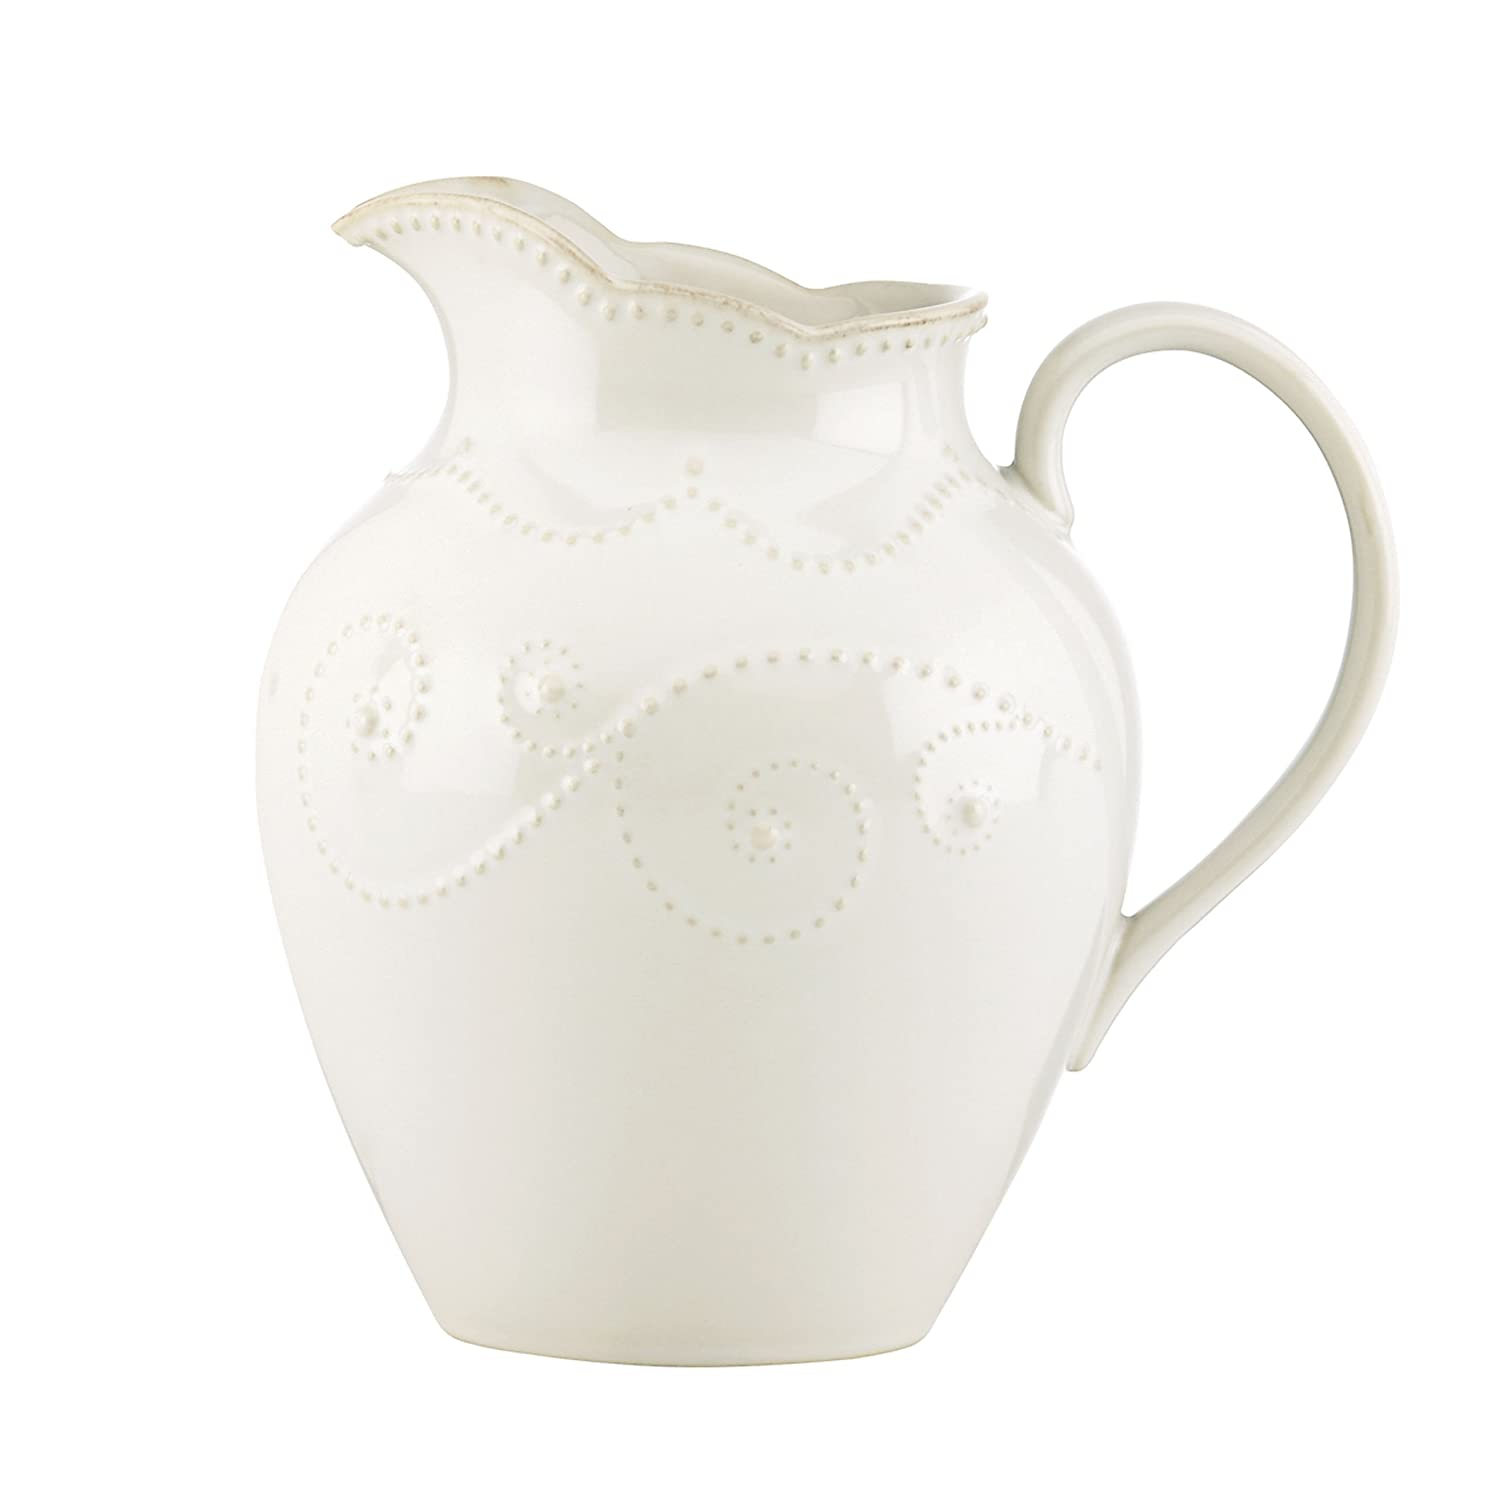 White Lenox French Perle Stoneware Pitcher